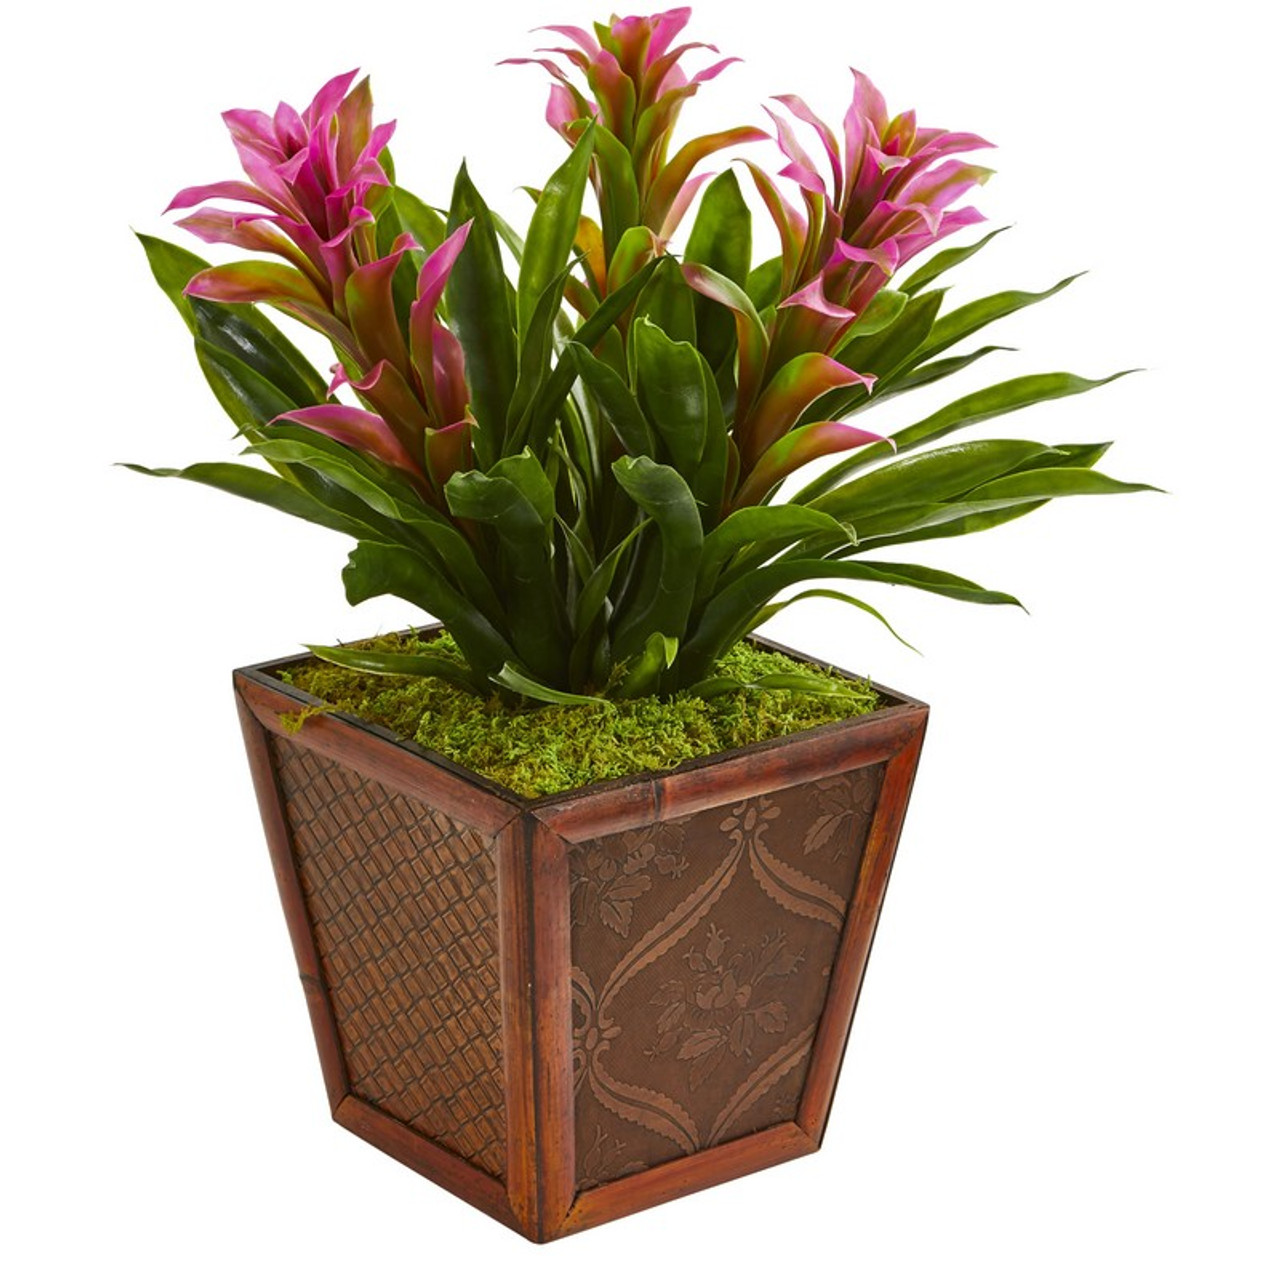 Triple Bromeliad Artificial Plant In Decorative Planter 6476 Pp By Nearly Natural